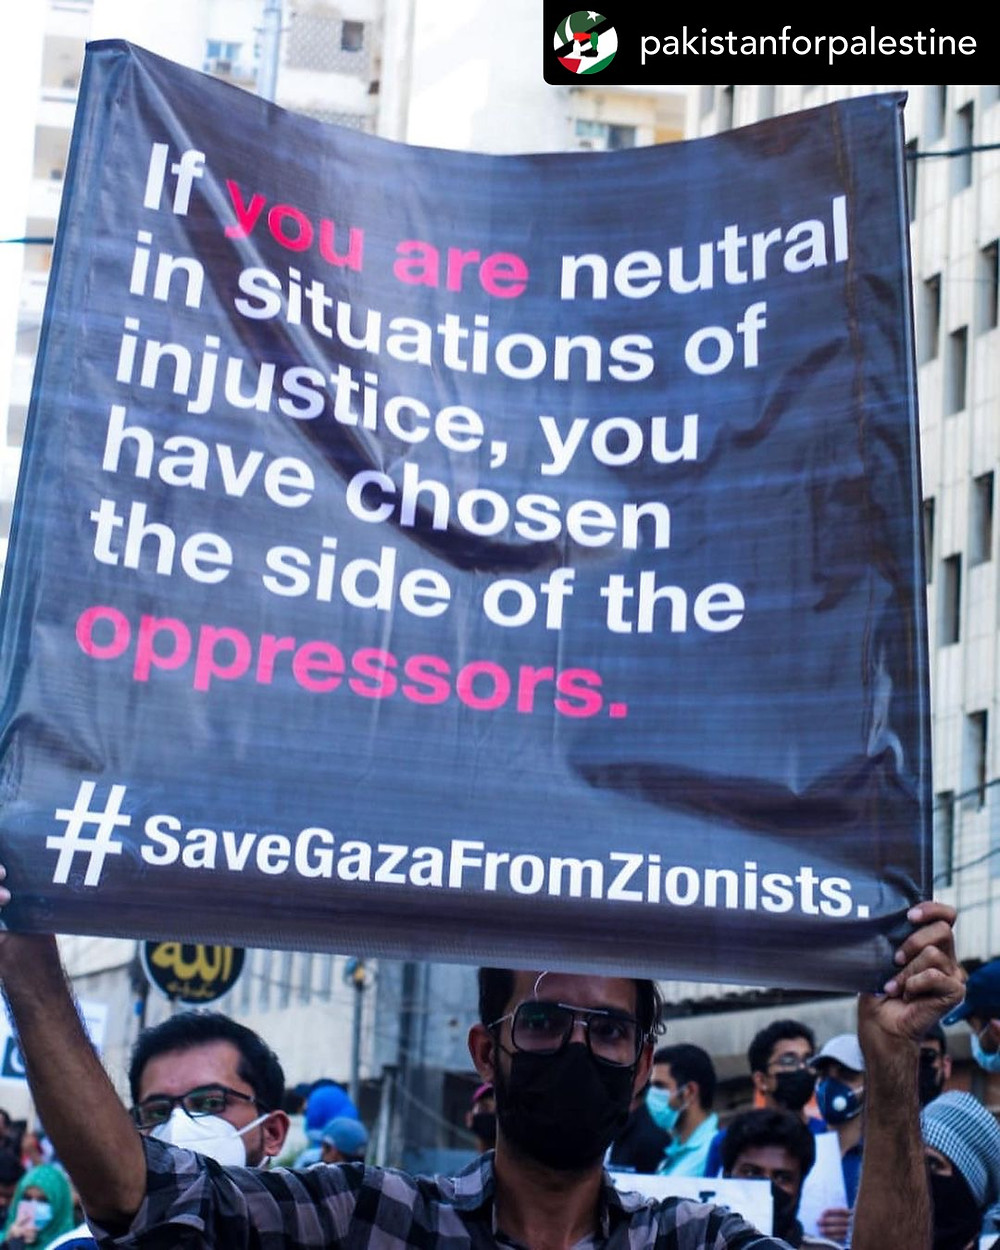 A protestor displaying their placard in Pakistan for Palestine Protest, May 19th, 2021